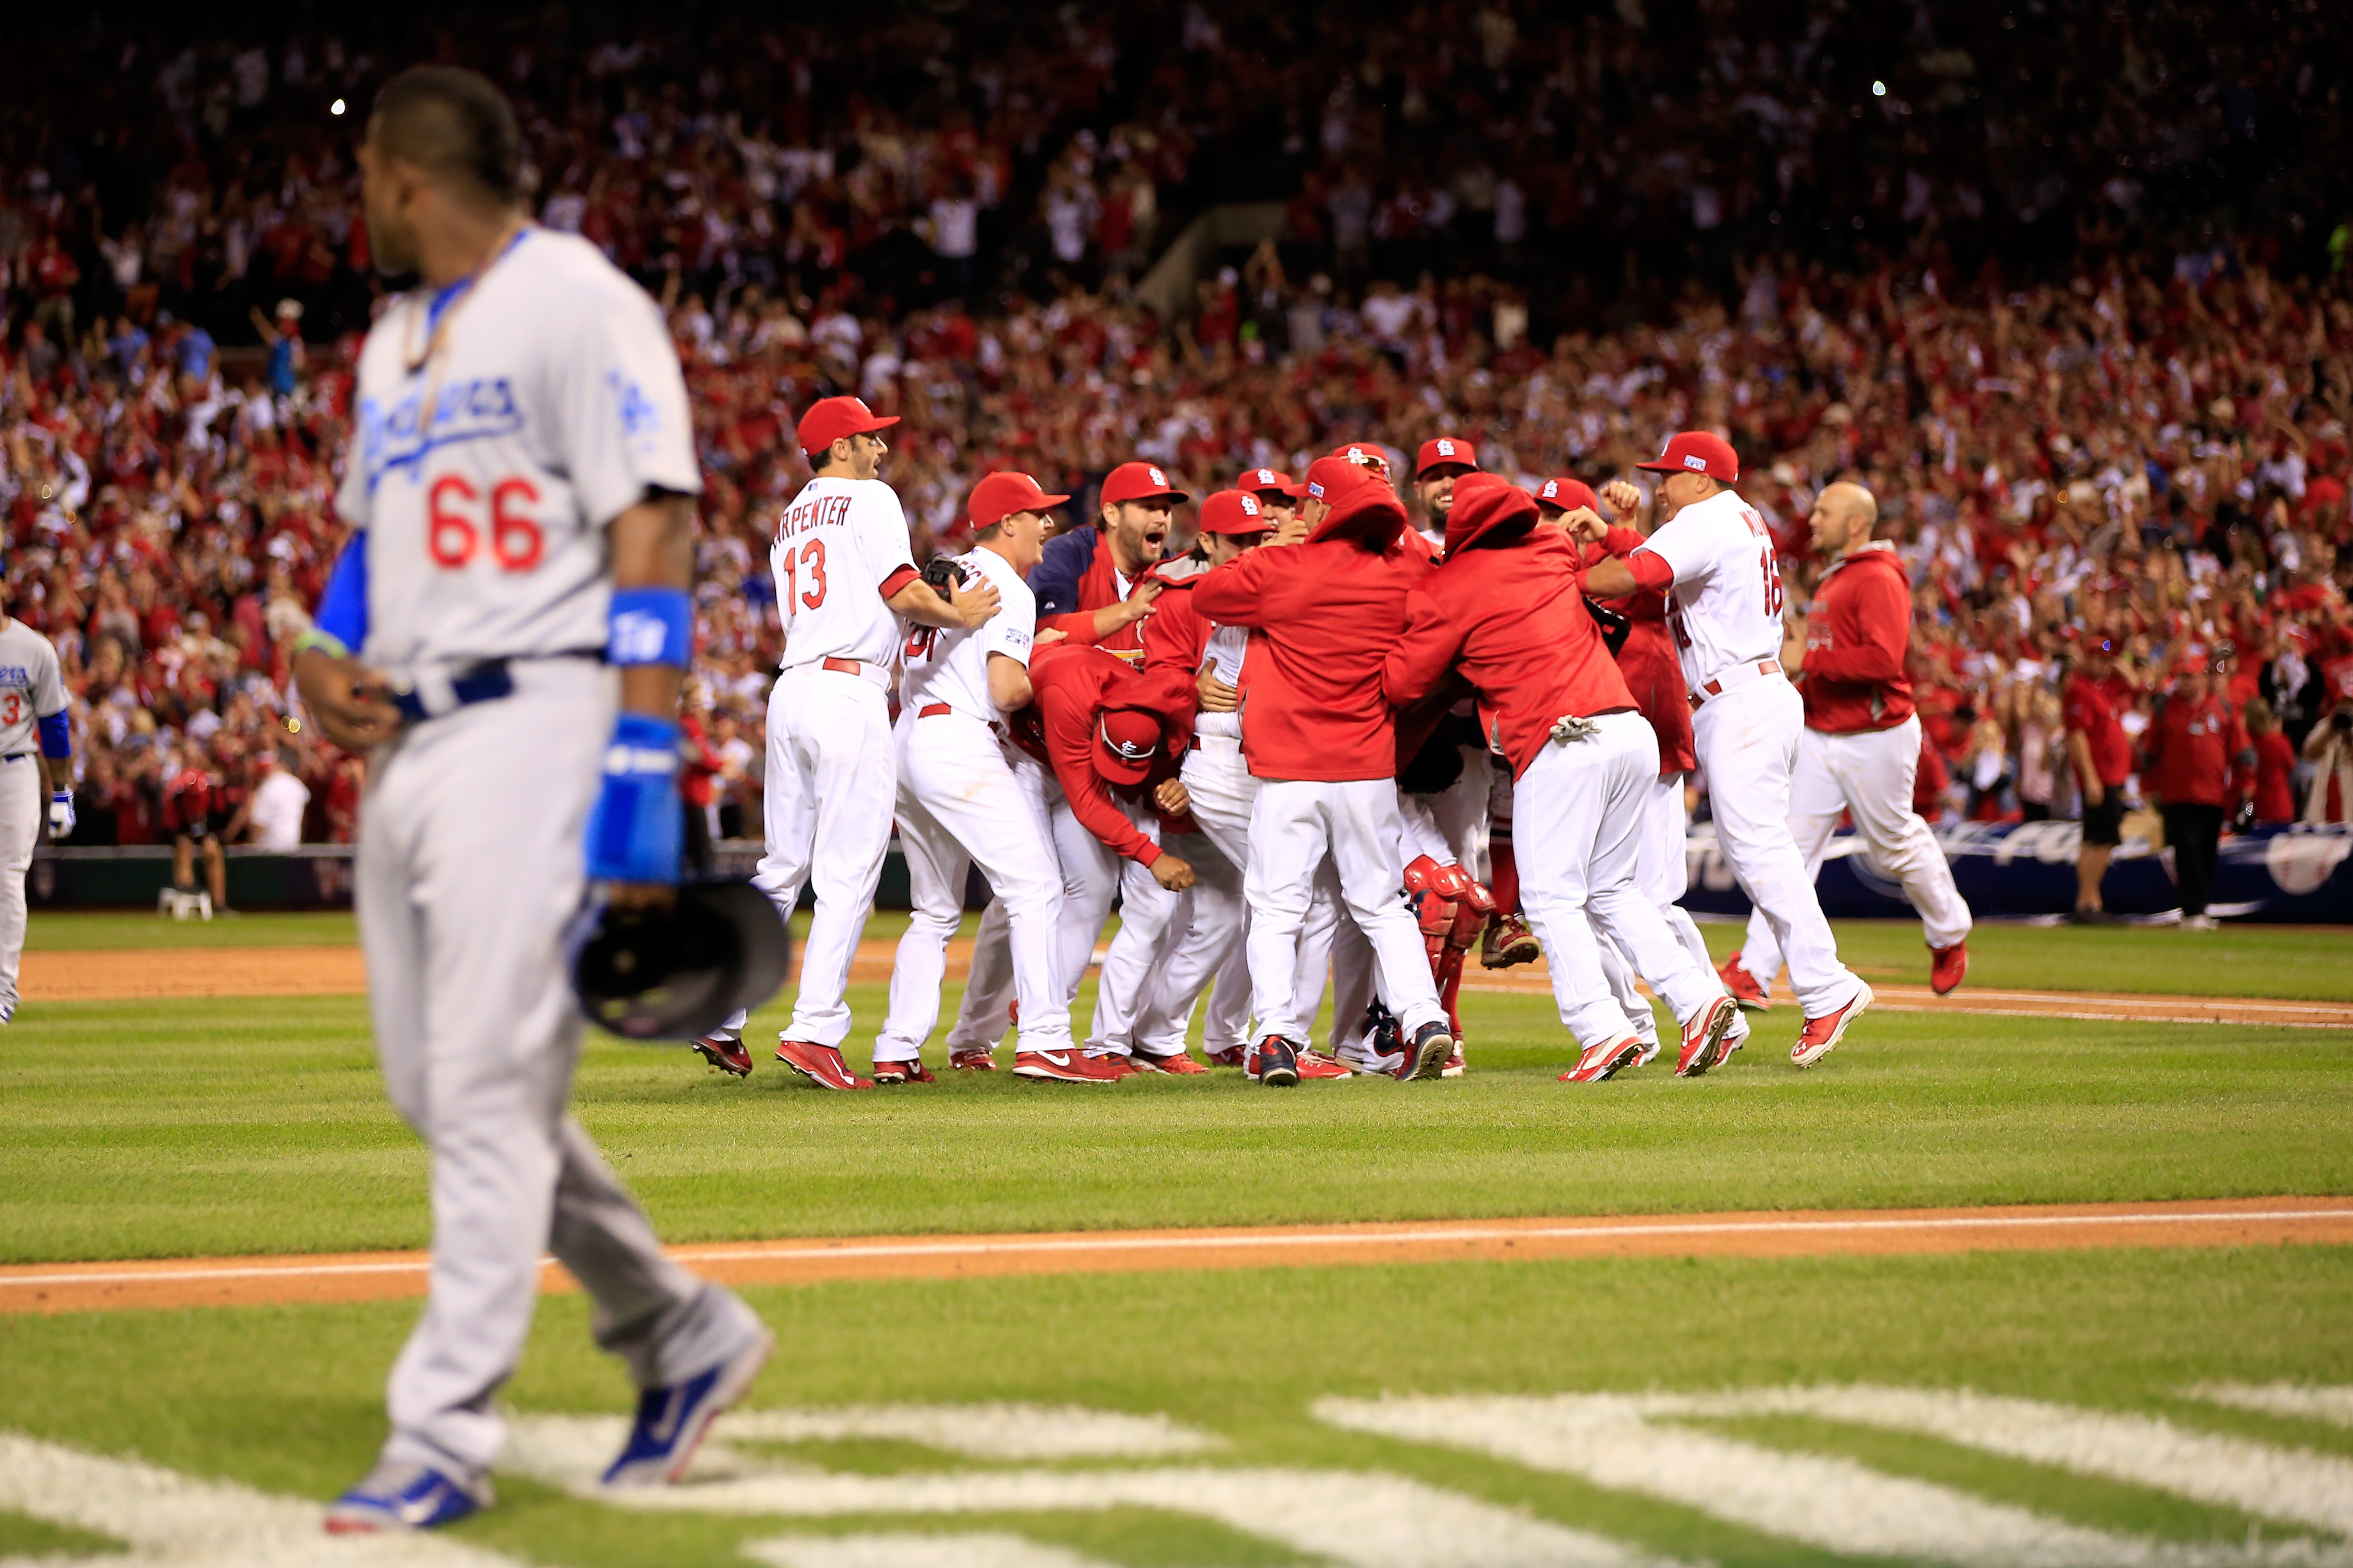 The St. Louis Cardinals celebrate after defeating the Los Angeles Dodgers as Yasiel Puig of the Los Angeles Dodgers walks off the field in Game Four of the National League Divison Series at Busch Stadium on Oct. 7, 2014 in St Louis.